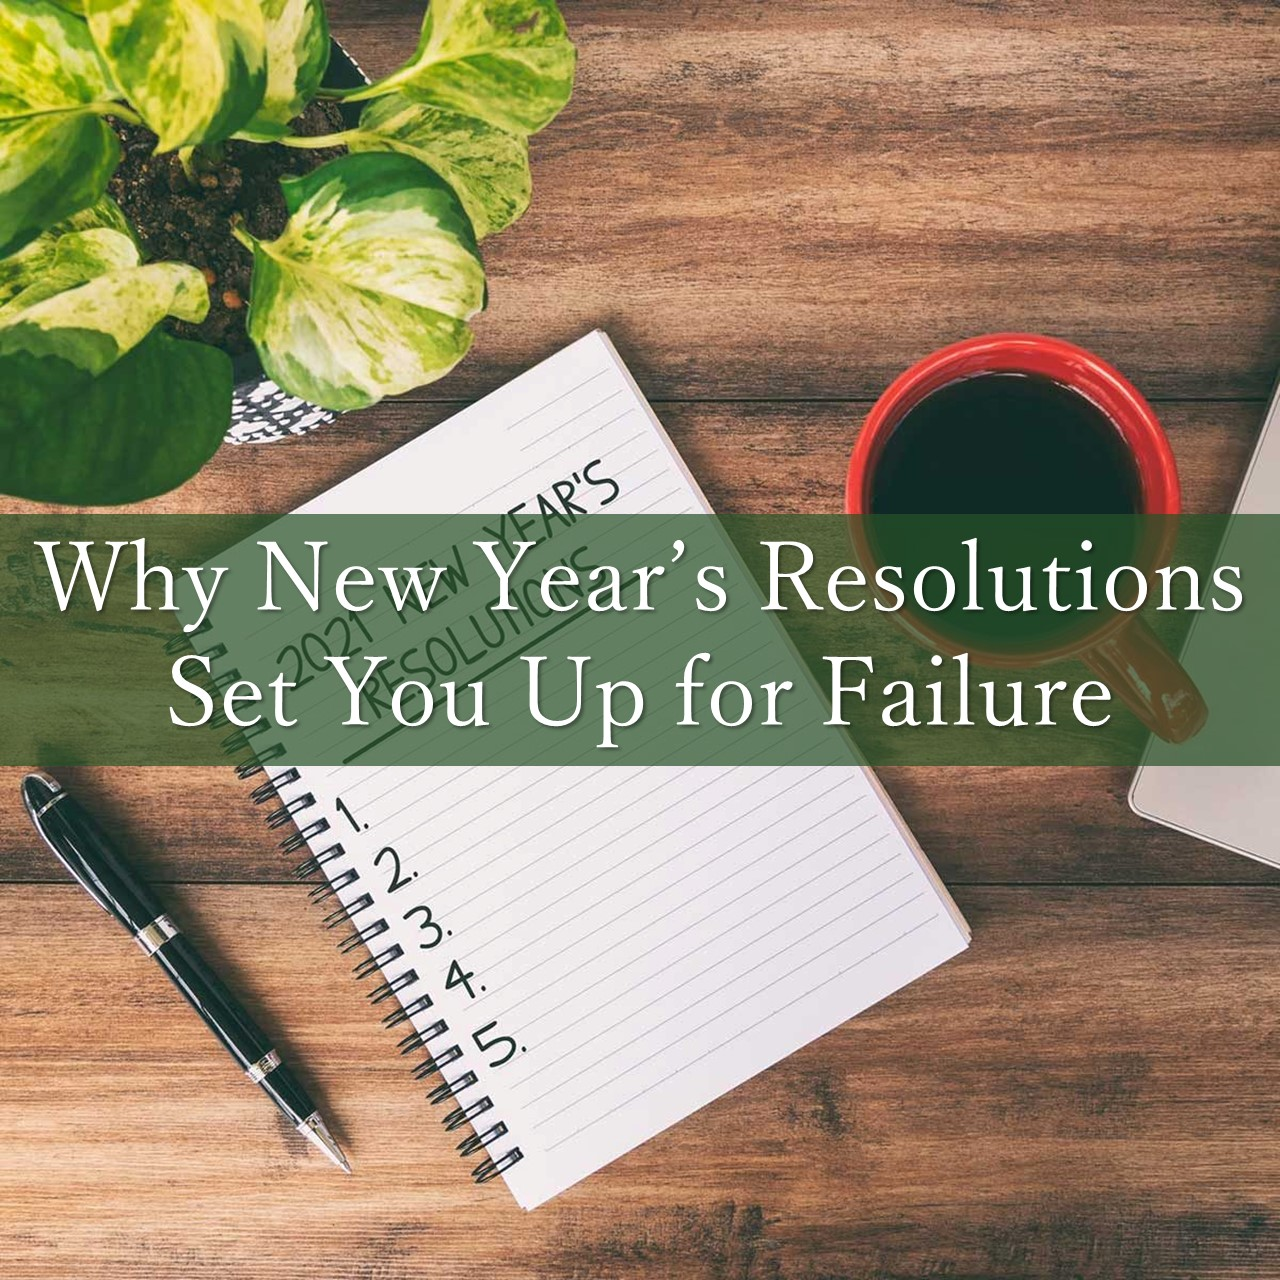 Why New Year's Resolutions Set You Up for Failure